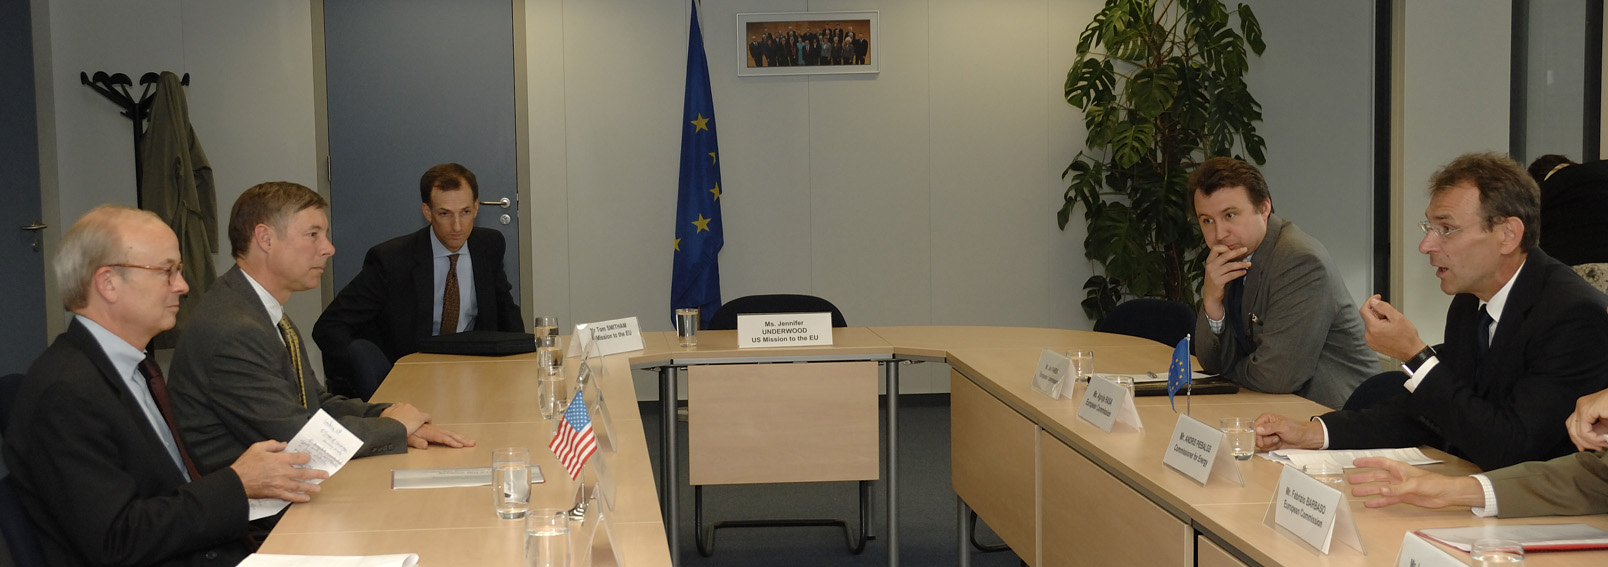 Visit by Rick Boucher, Chairman of the US Subcommittee on Energy and Air Quality, to the EC